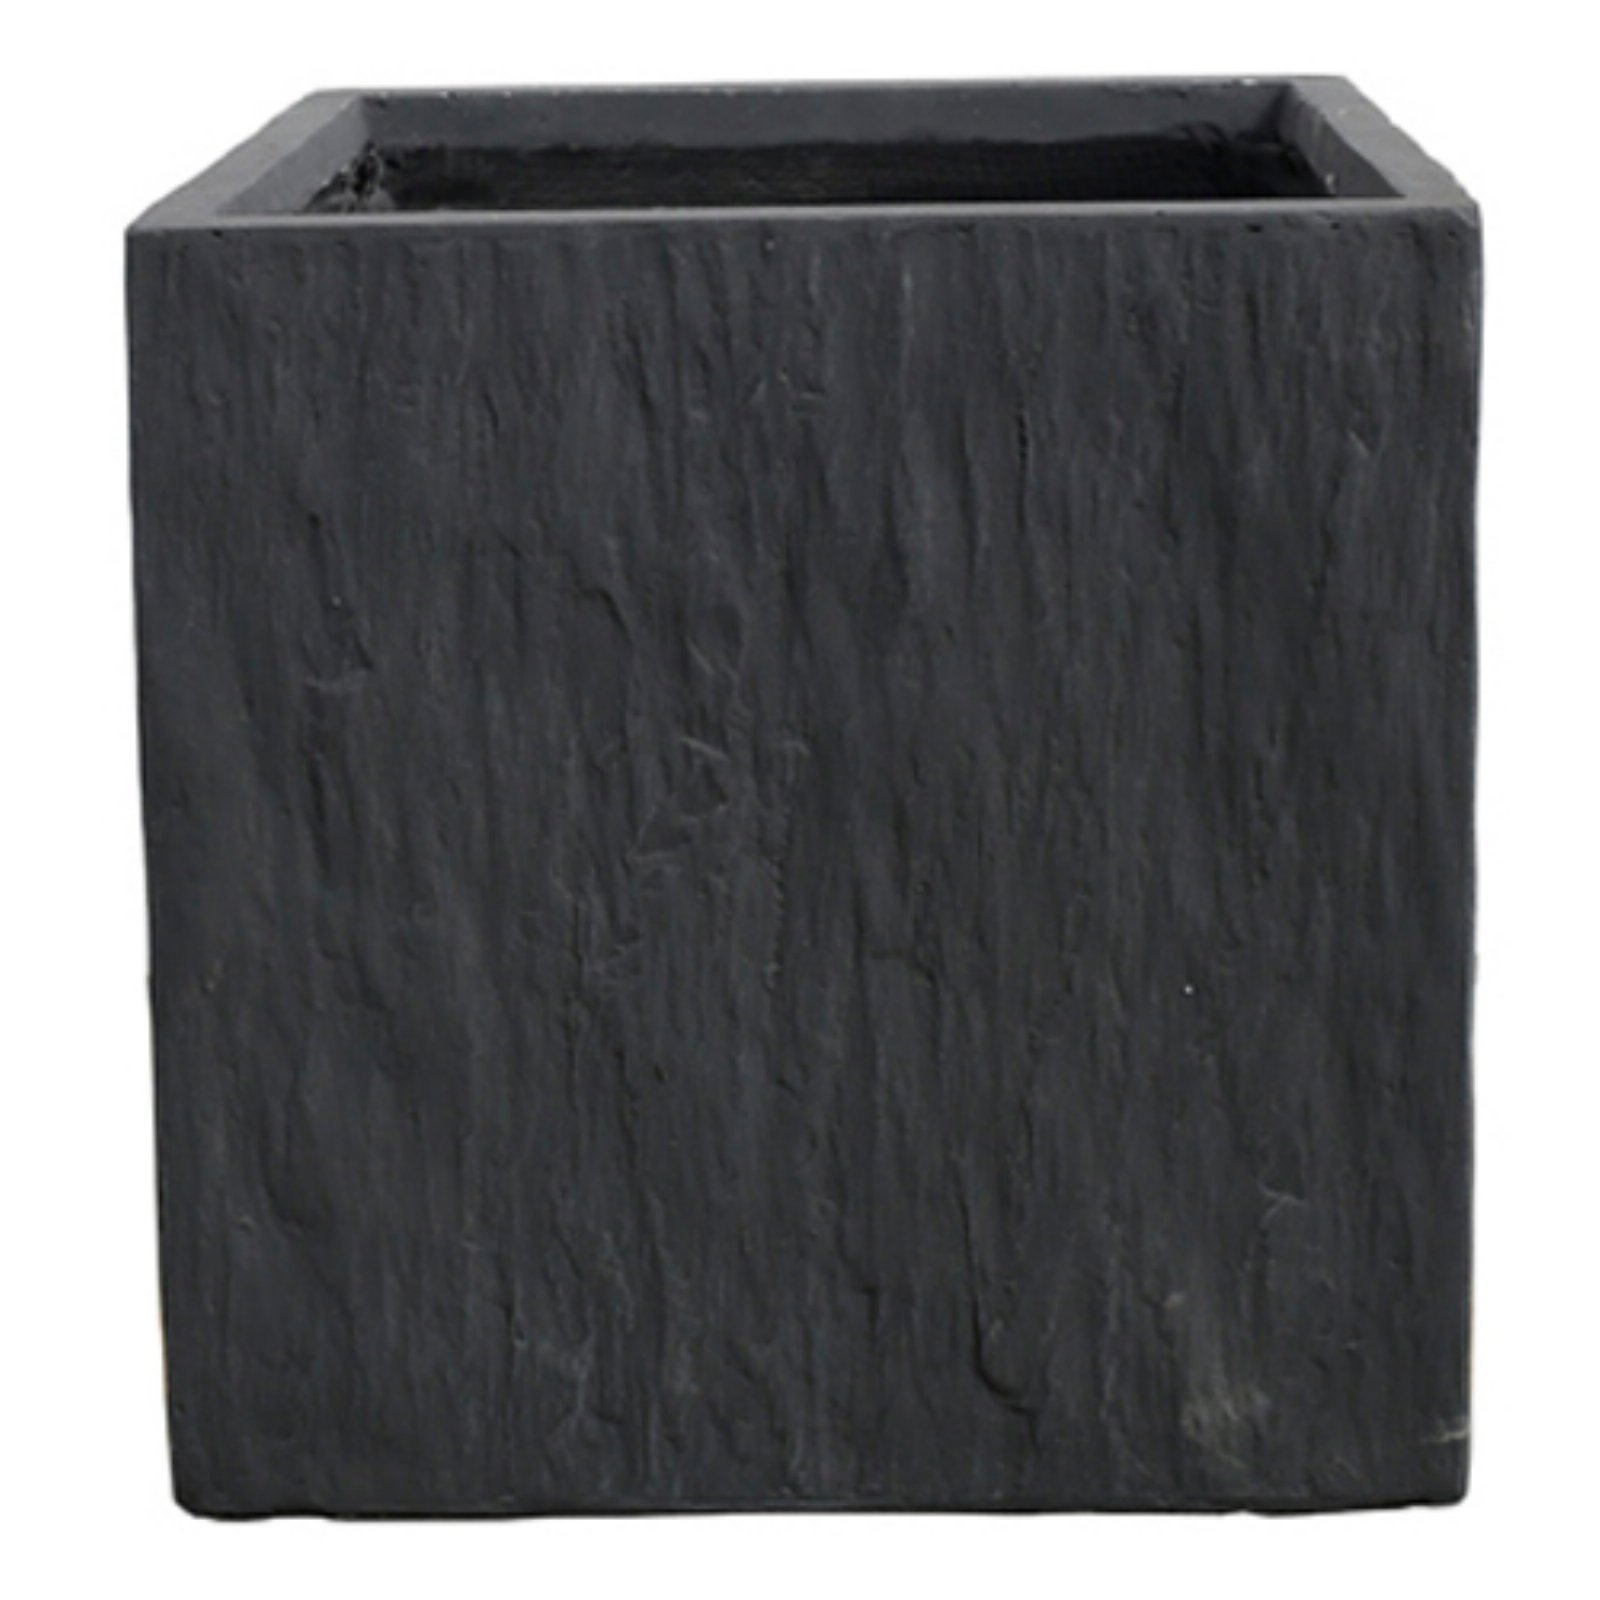 Kasamodern Modern Square Black Slate Planter Pot by La Kasa LLC